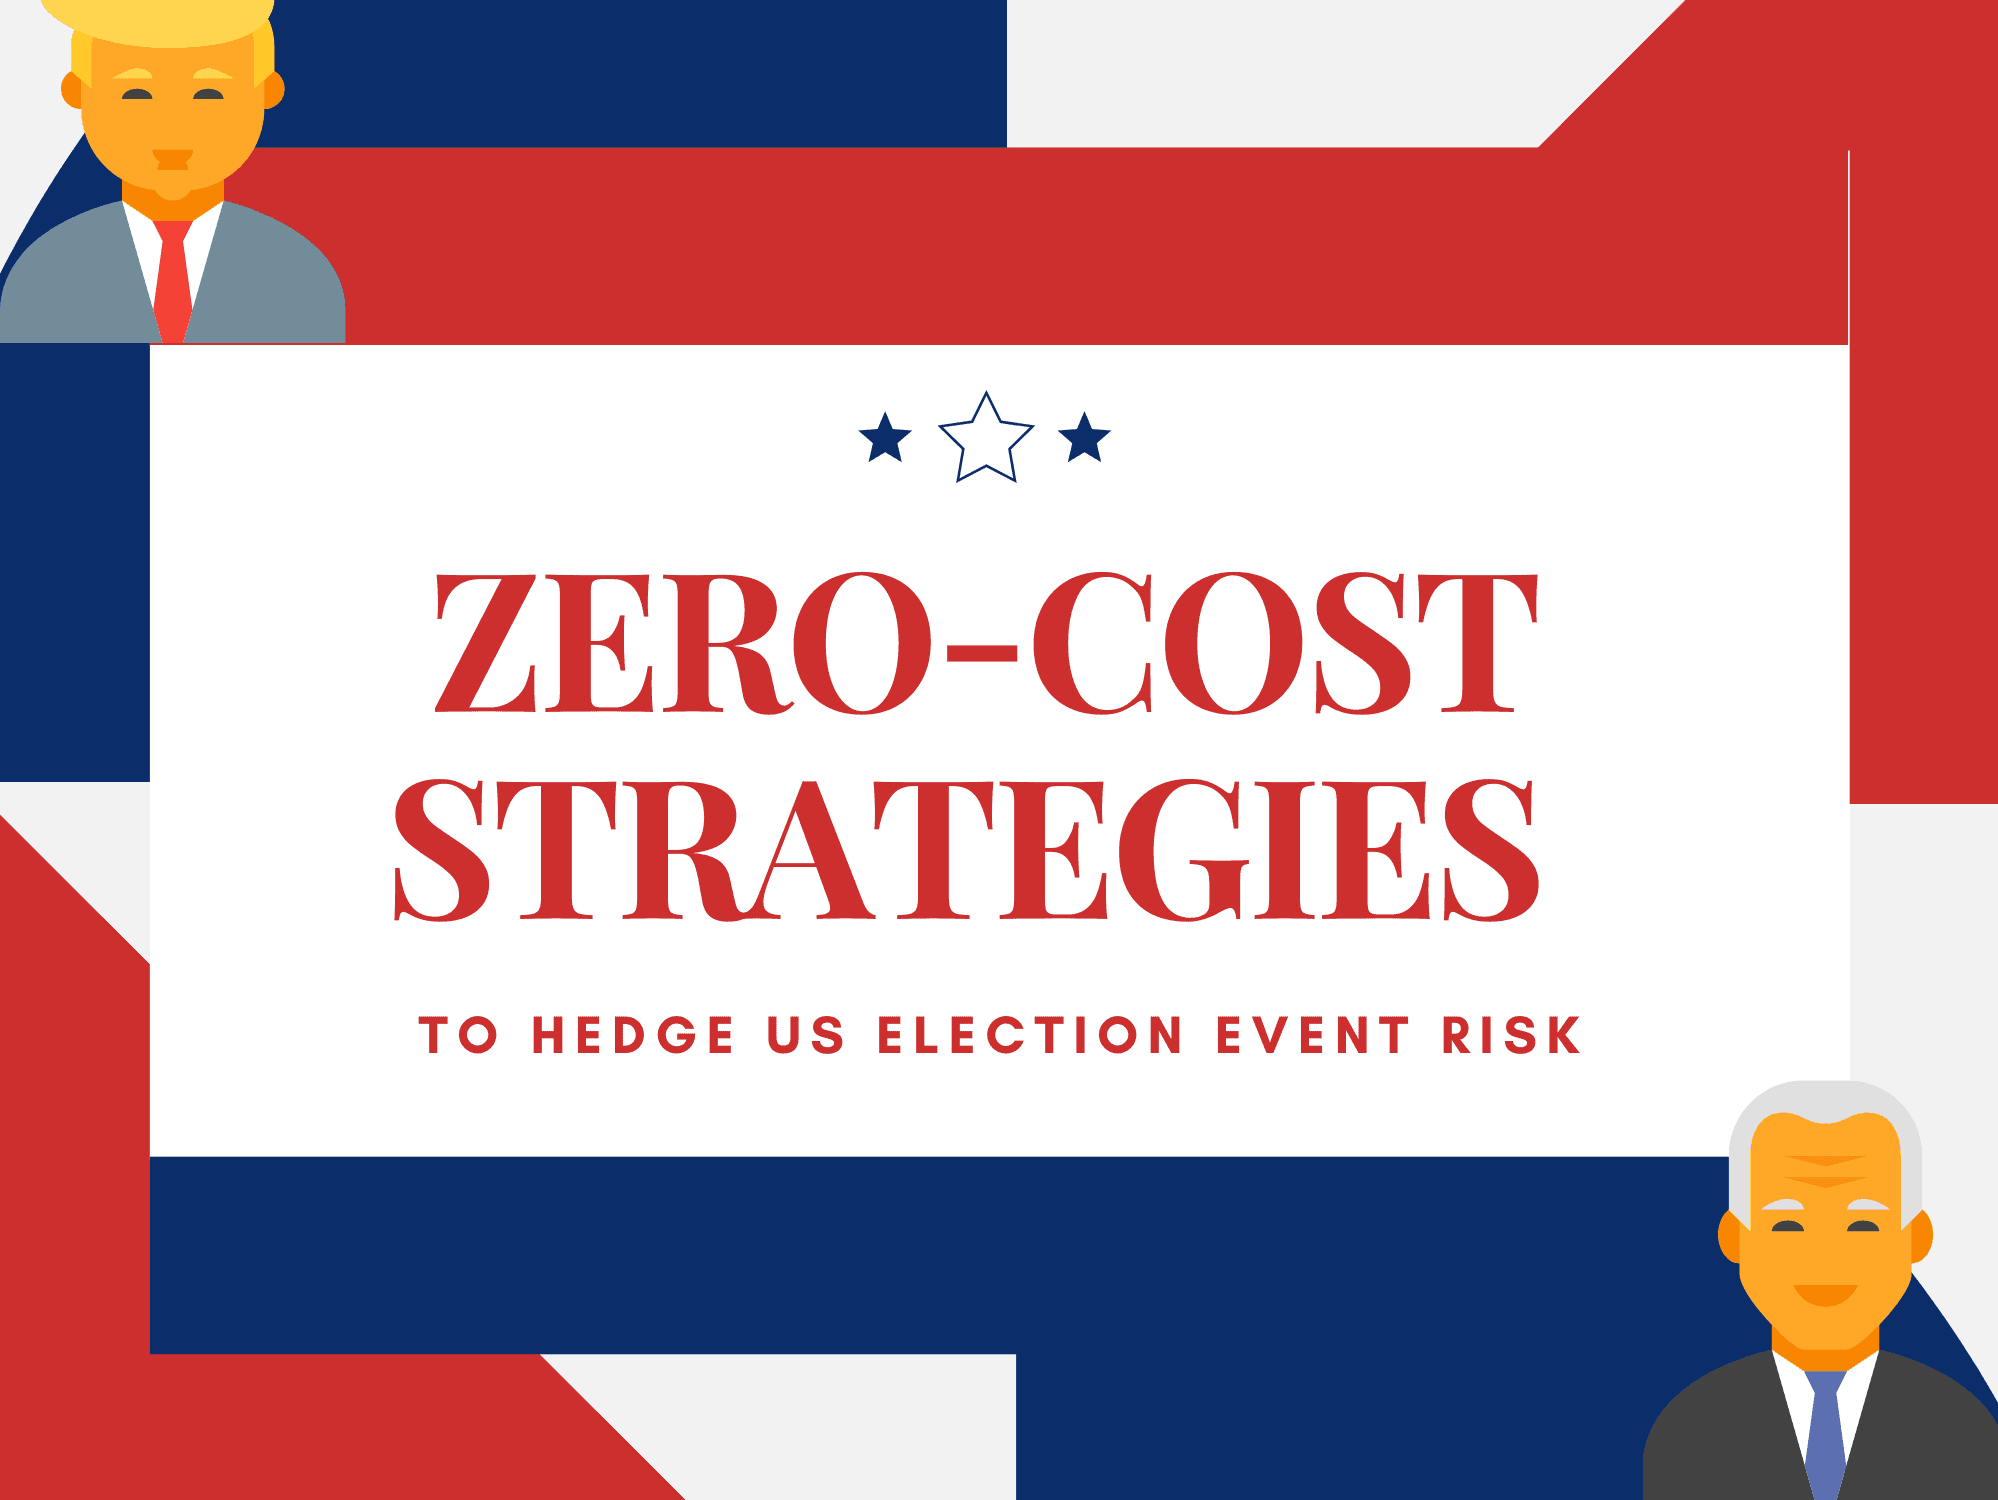 Zero-Cost Strategies to Hedge Short-Term US Election Event Risk